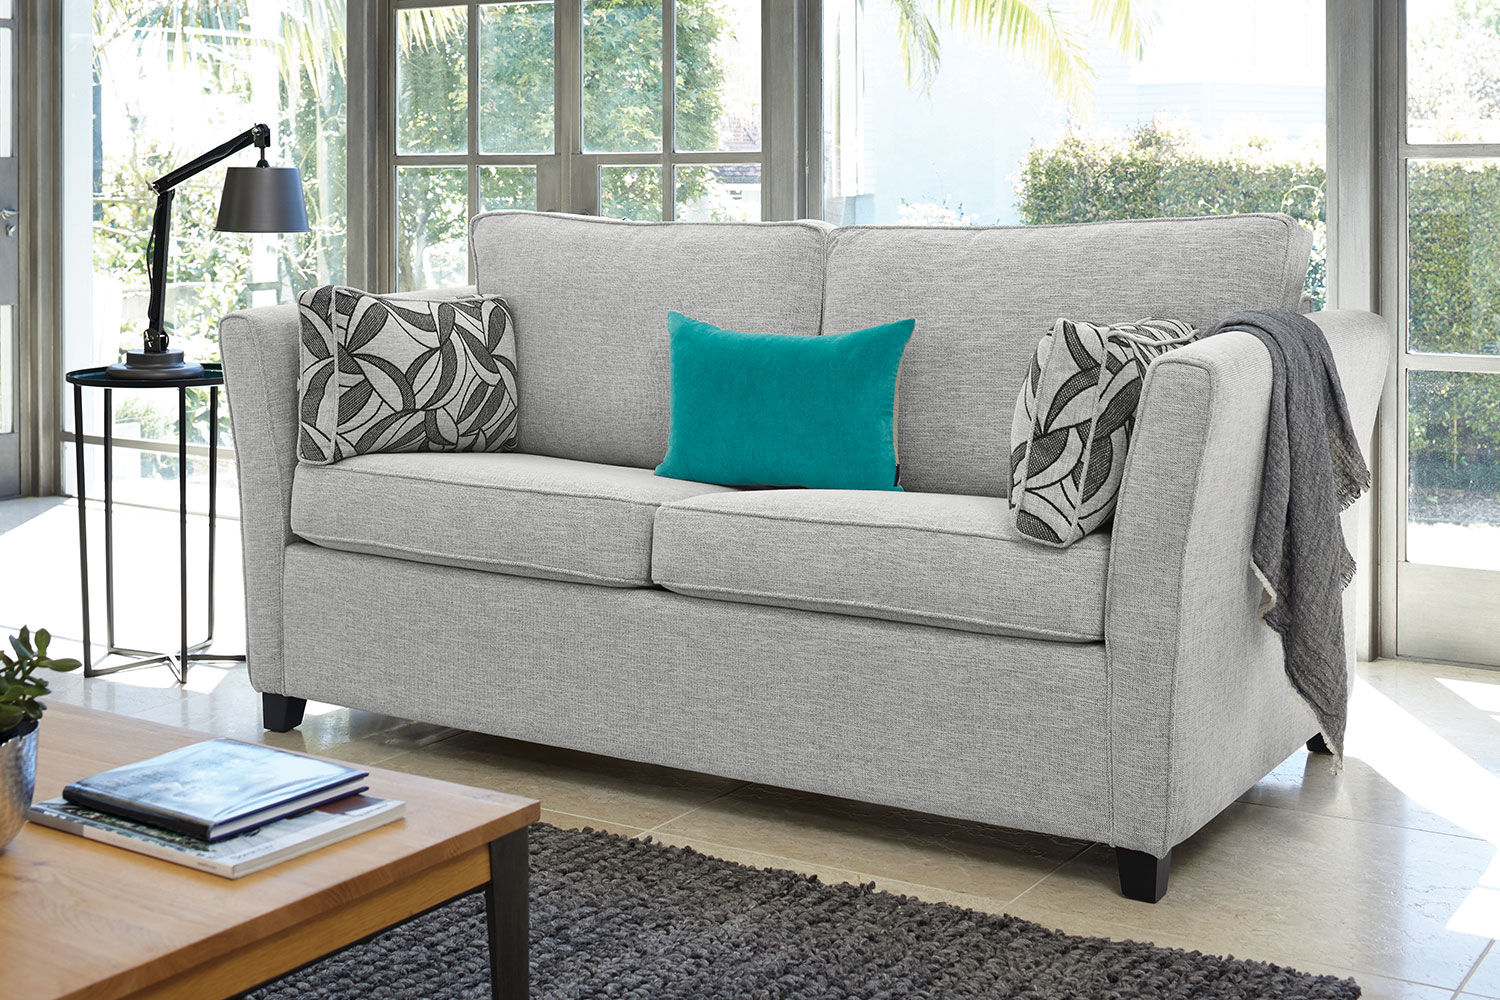 2 seater sofa new zealand single dimensions vienna fabric bed by evan john philp harvey norman